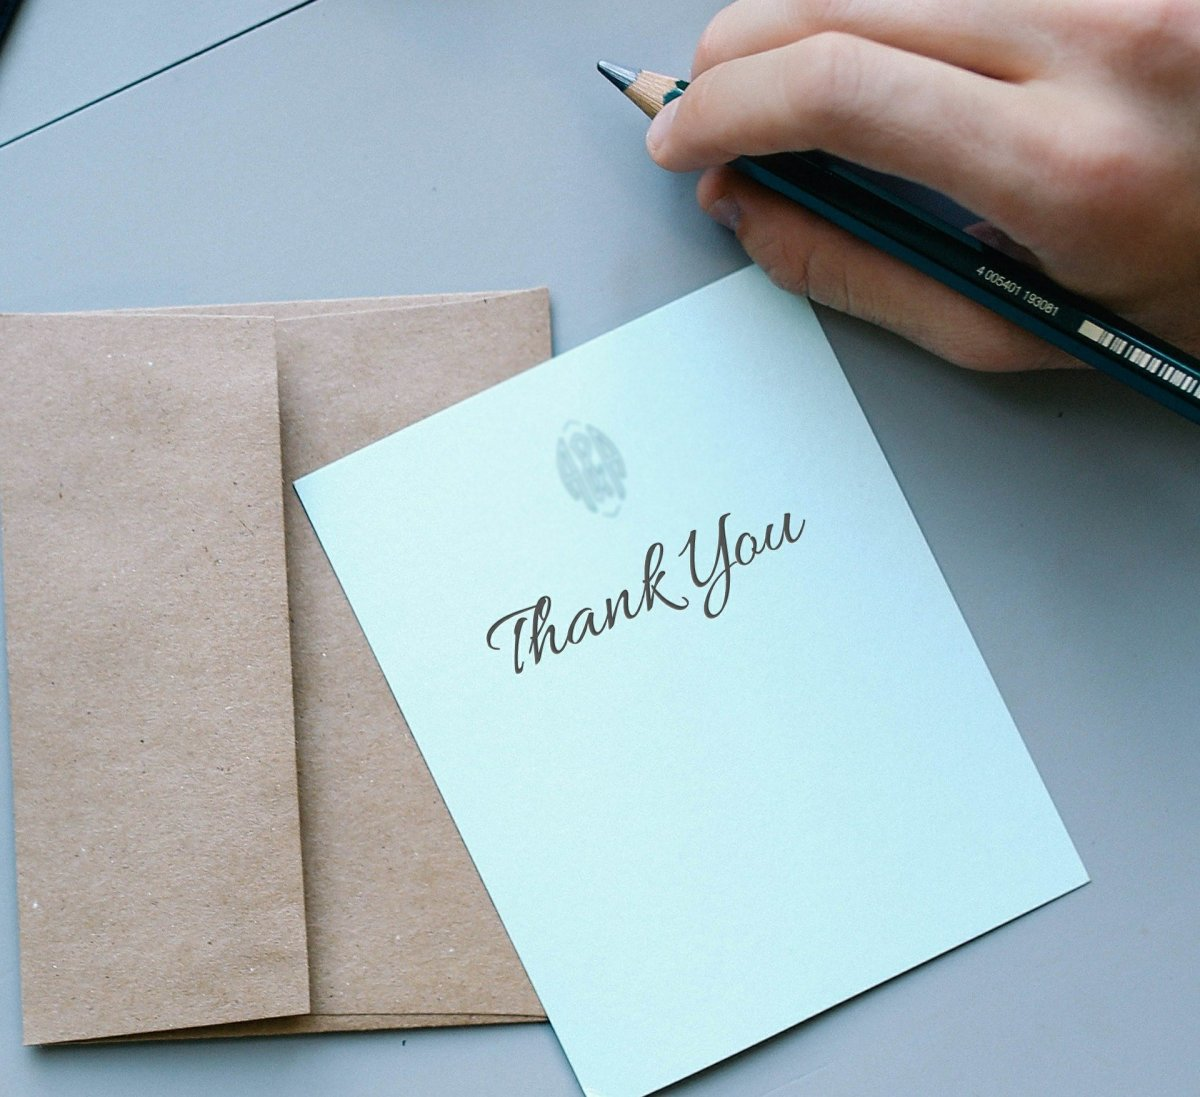 Why Is It Important to Make a Gratitude List?